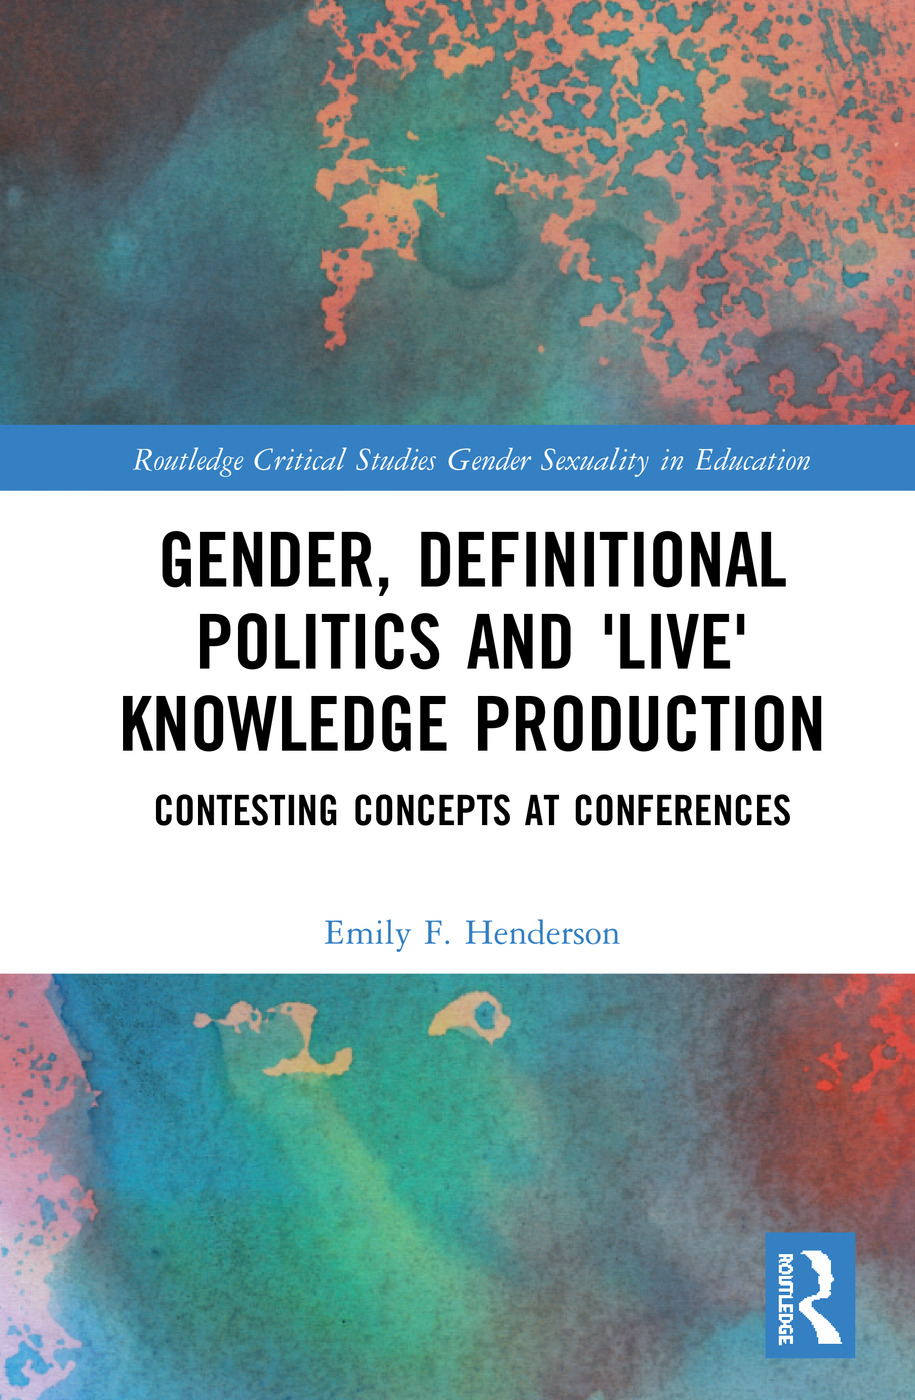 Gender, Definitional Politics and 'Live' Knowledge Production: Contesting Concepts at Conferences, 1st Edition (Hardback) book cover